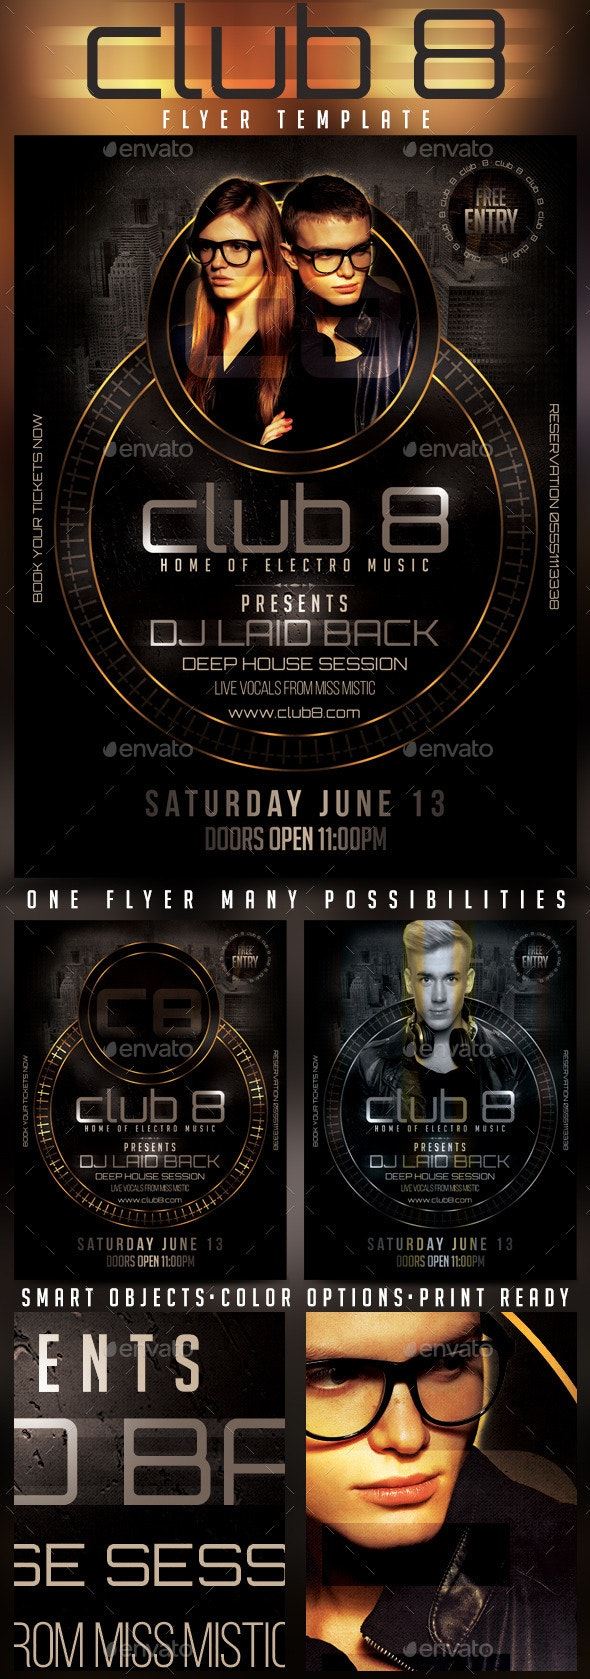 Club 8 Deep House Session Flyer Template - Clubs & Parties Events